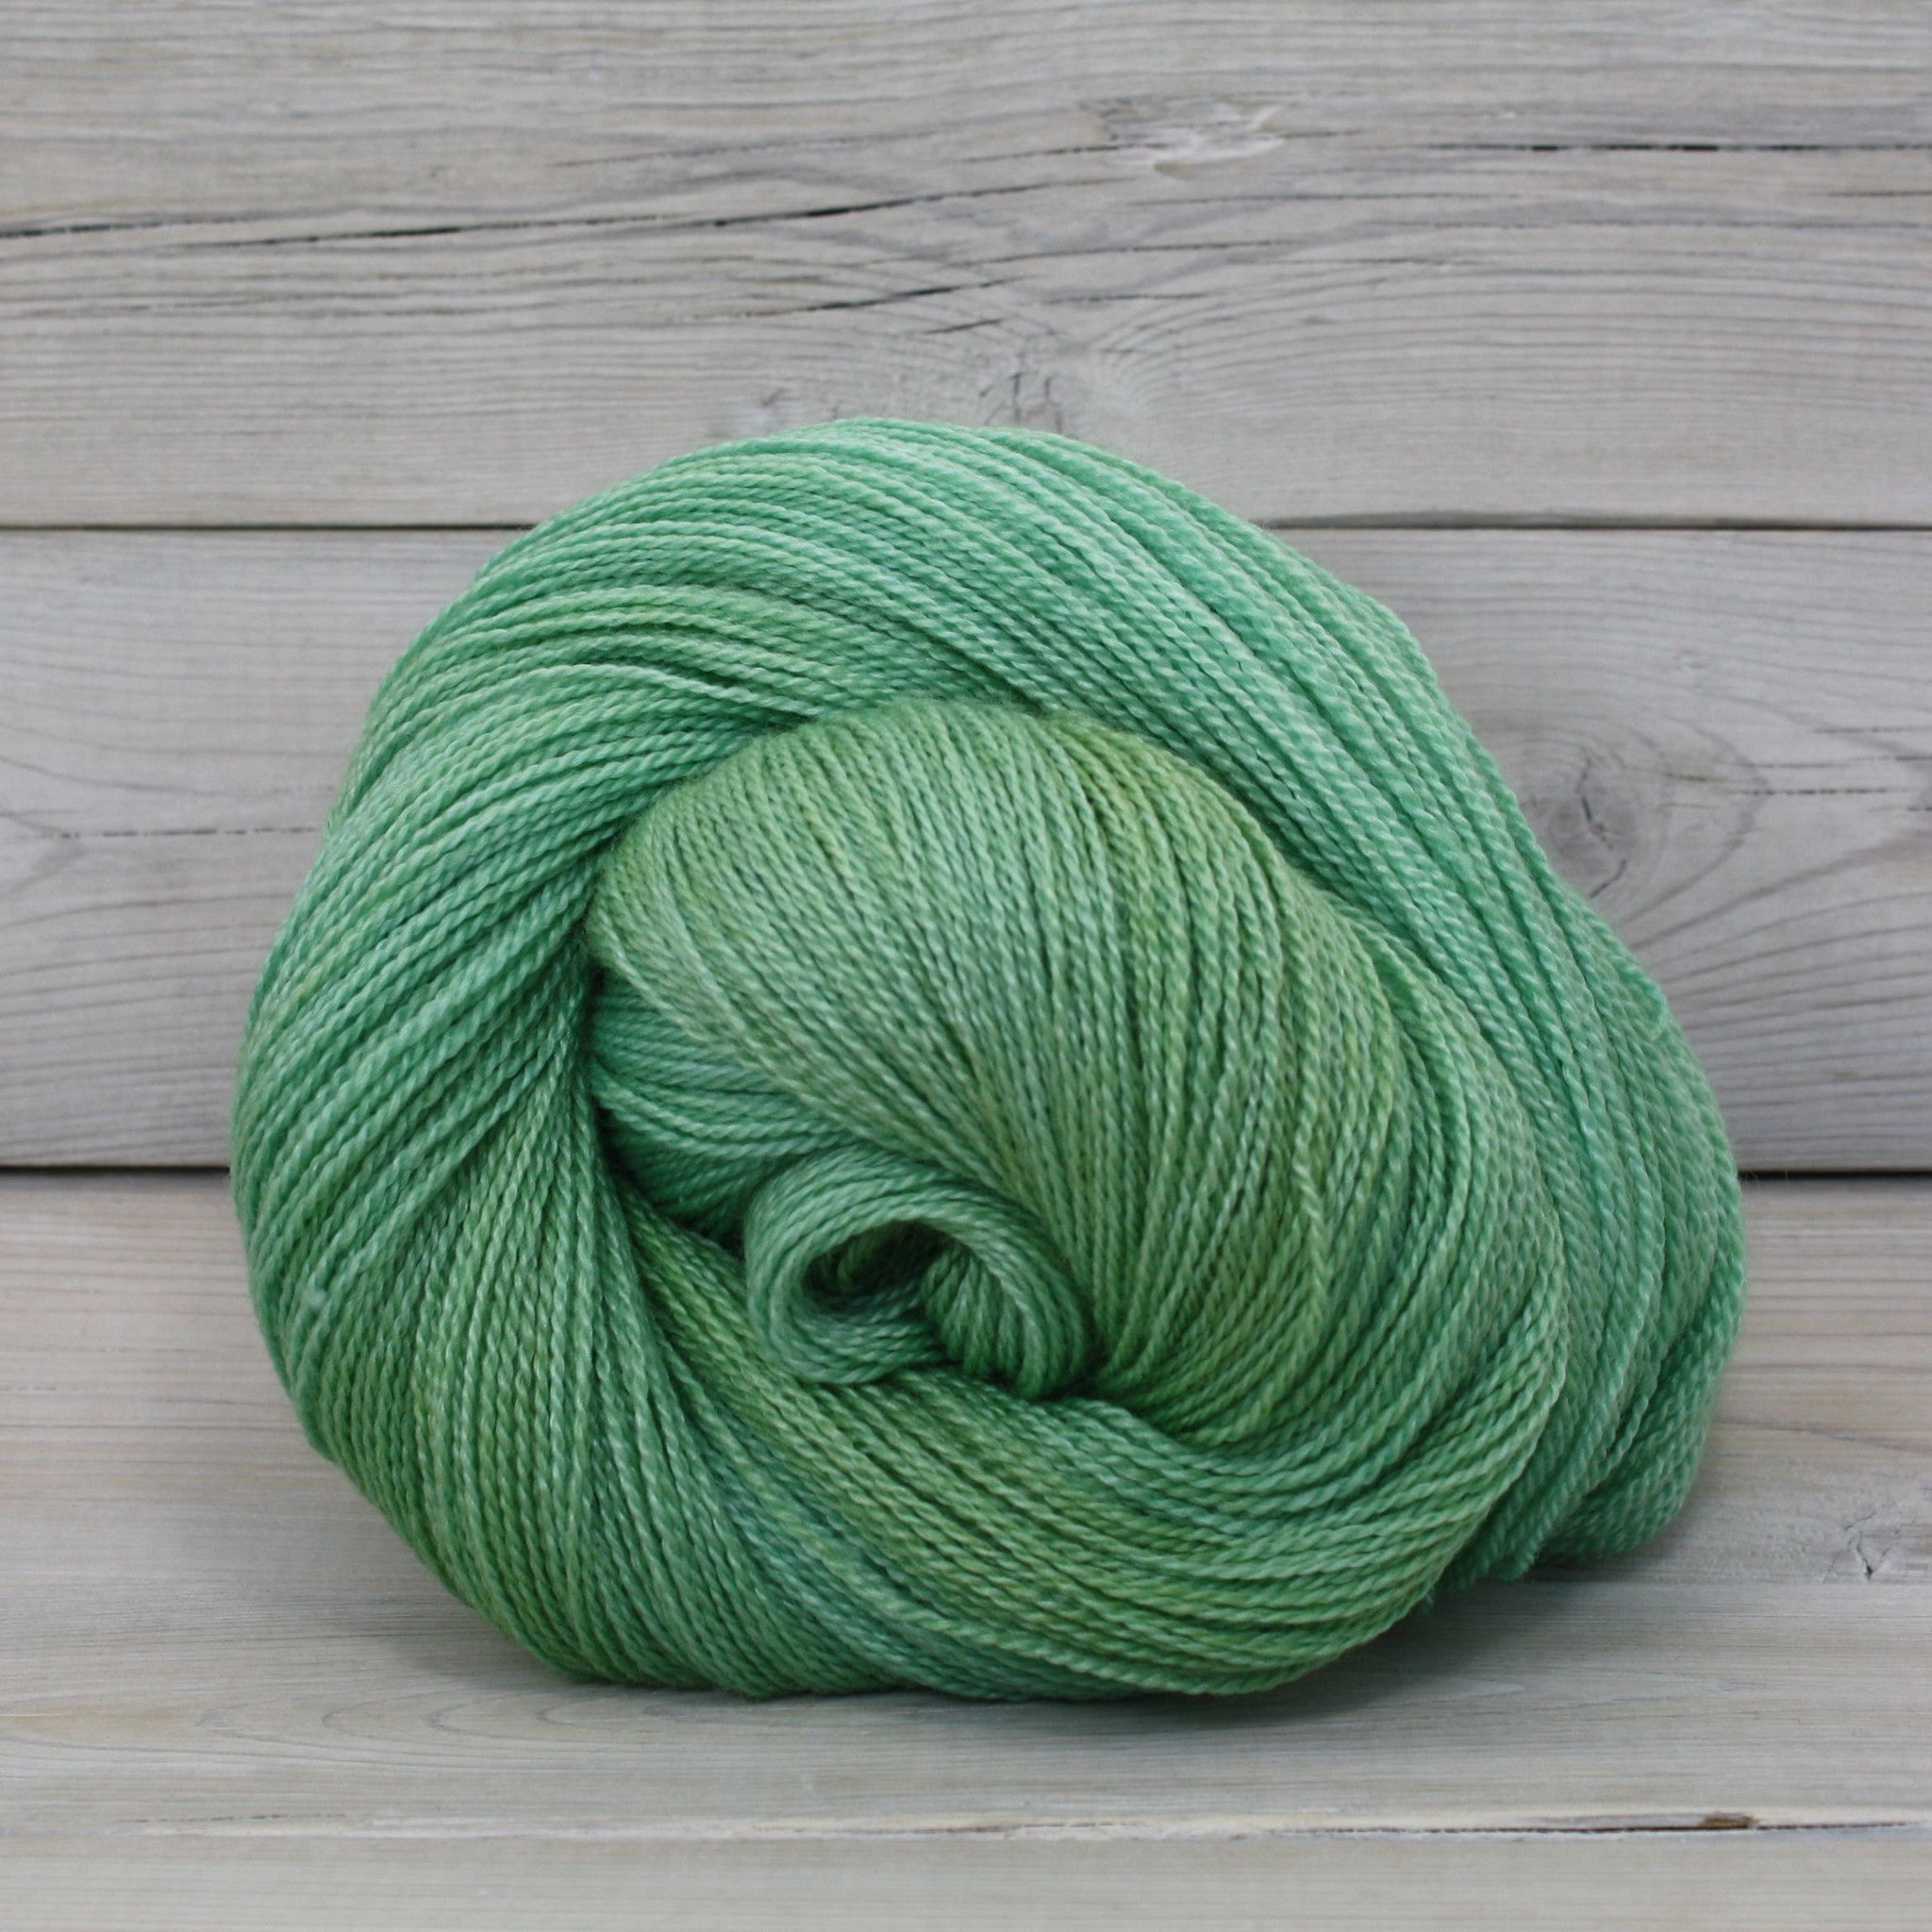 Luna Grey Fiber Arts Starbright Yarn | Colorway: Sea Glass